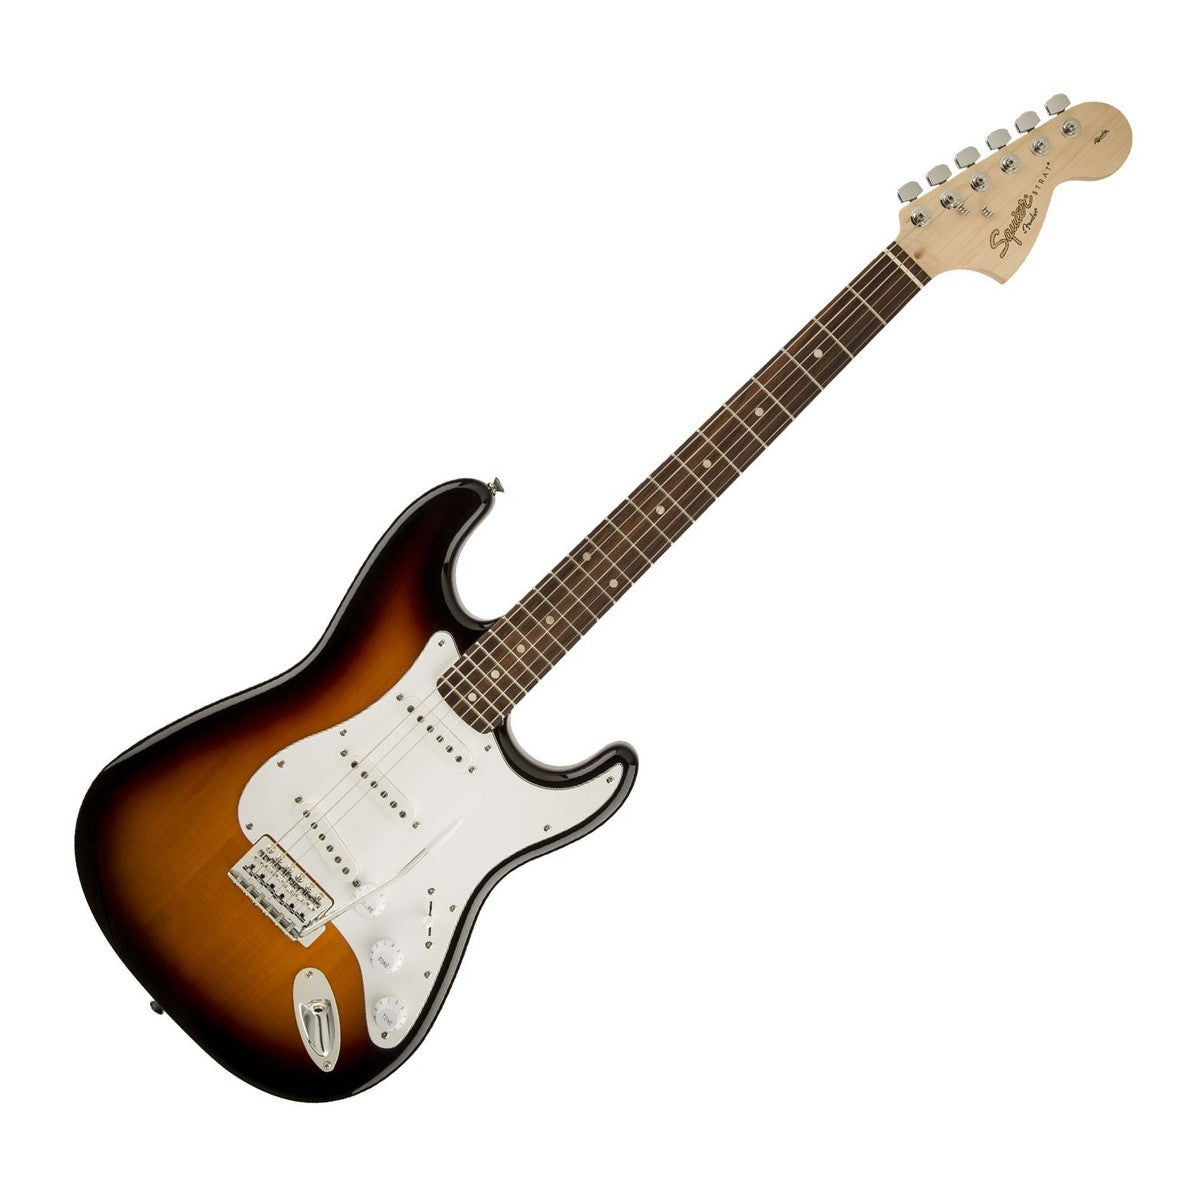 Squier Affinity Stratocaster - Brown Sunburst